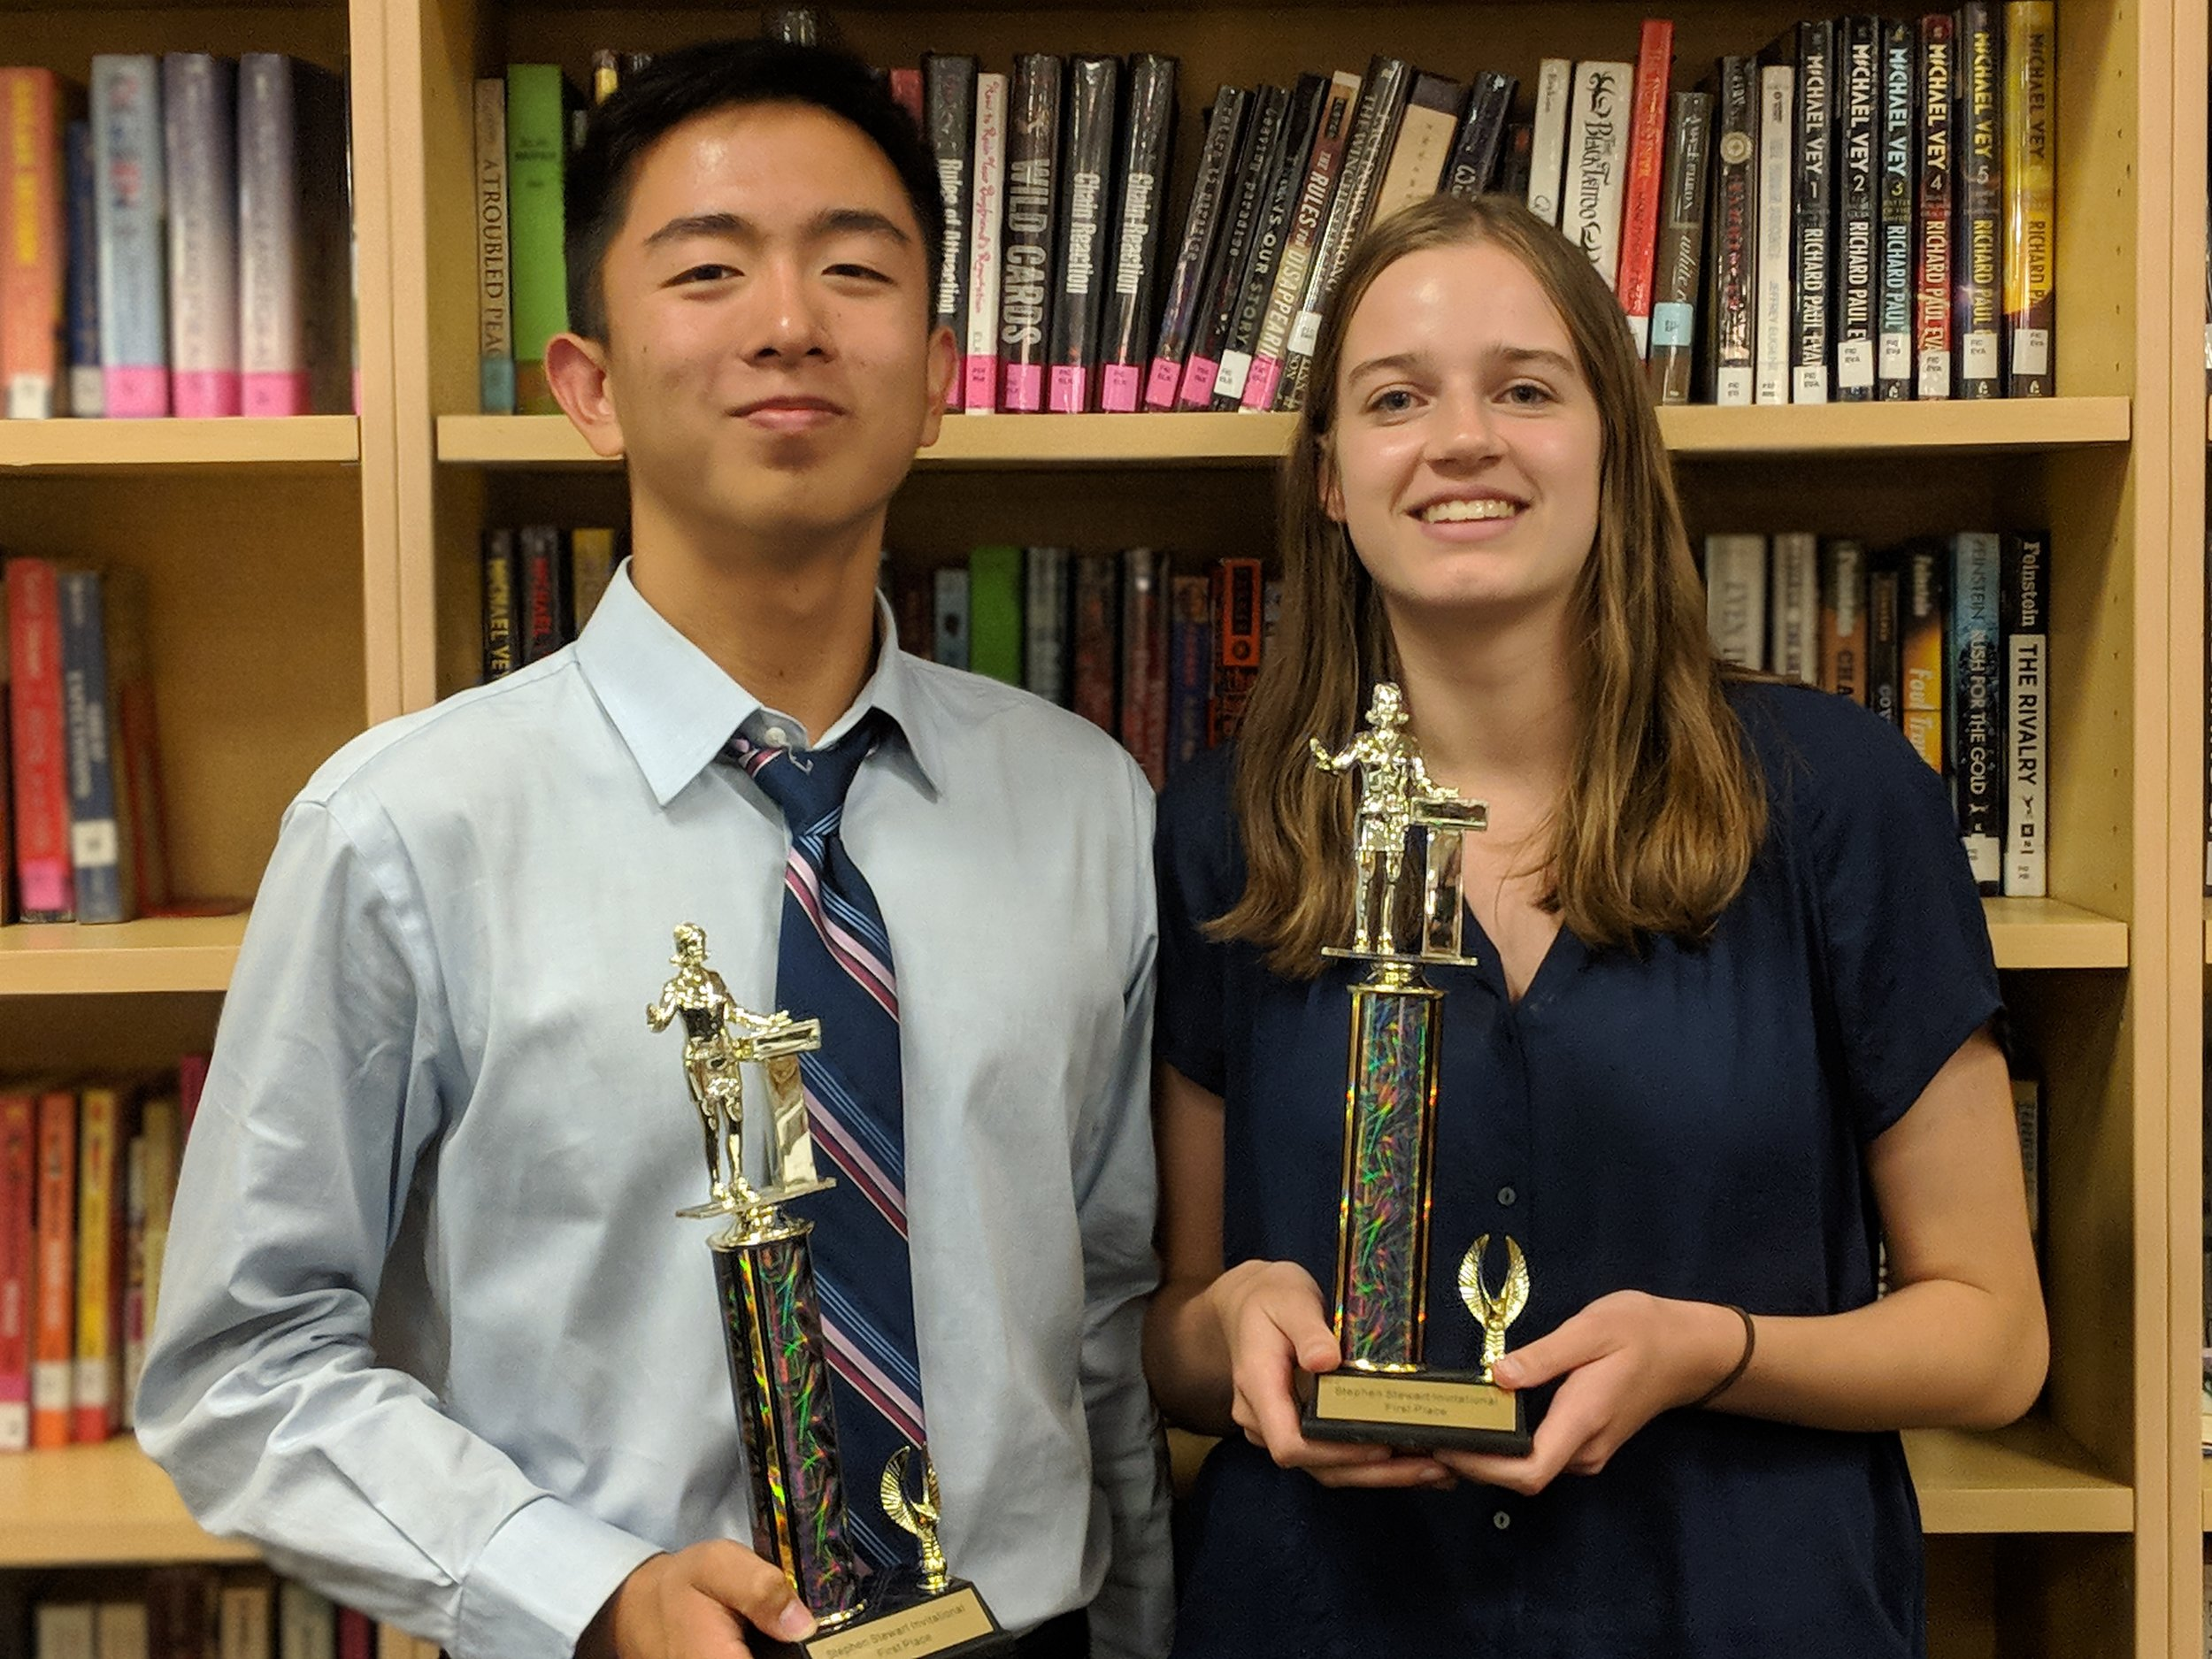 Ryan Lee (left) and Sophie Stankus (right) after winning the tournament.